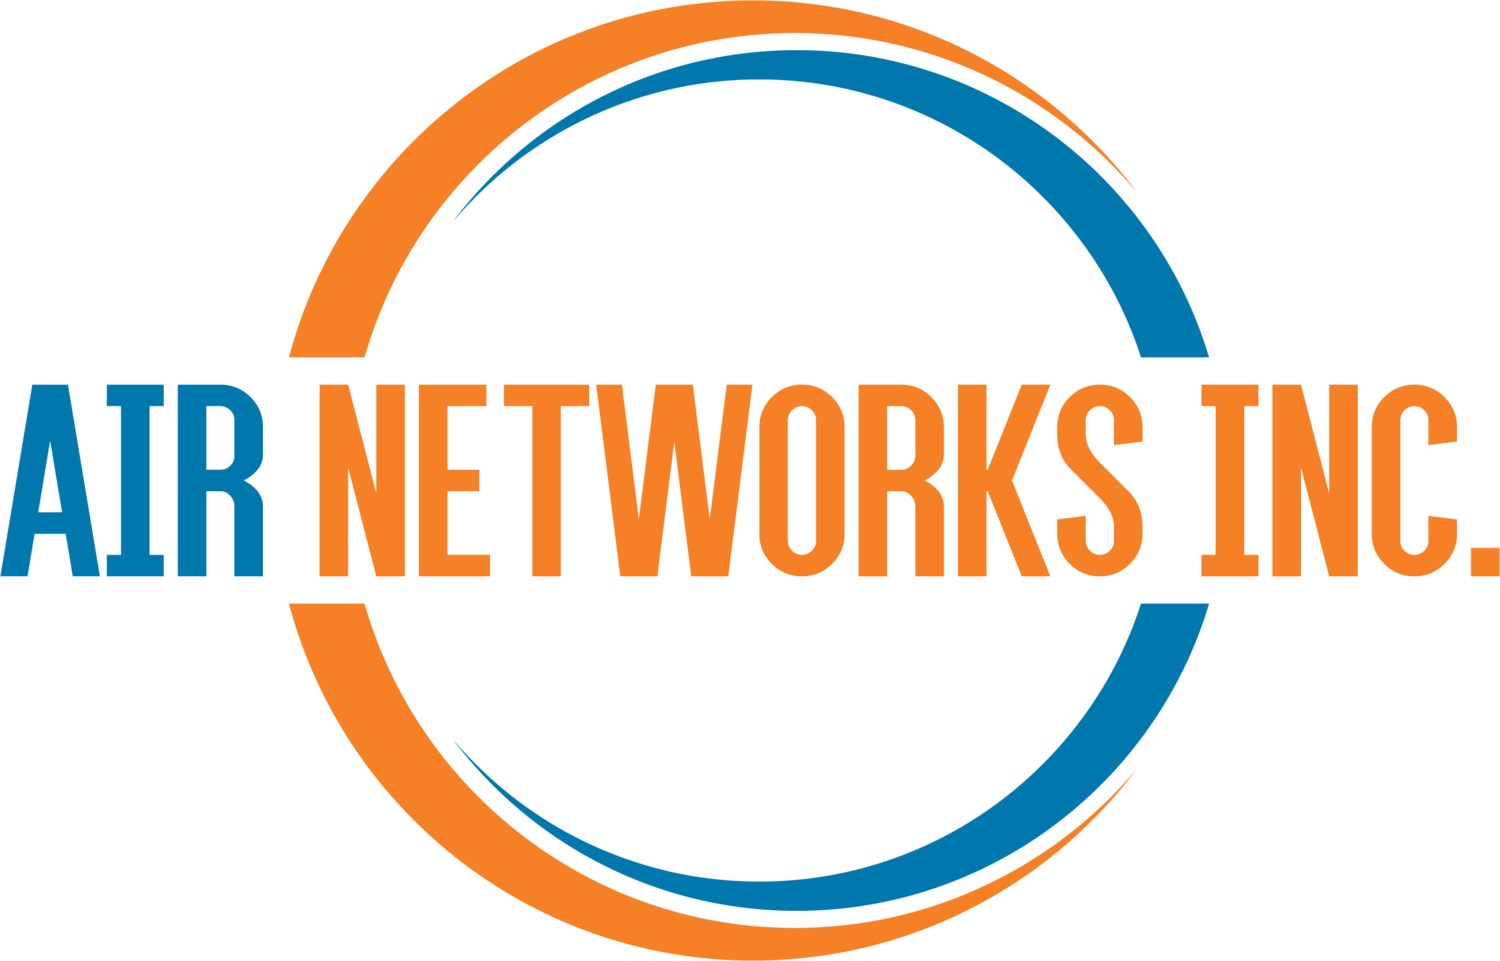 Air Networks Inc